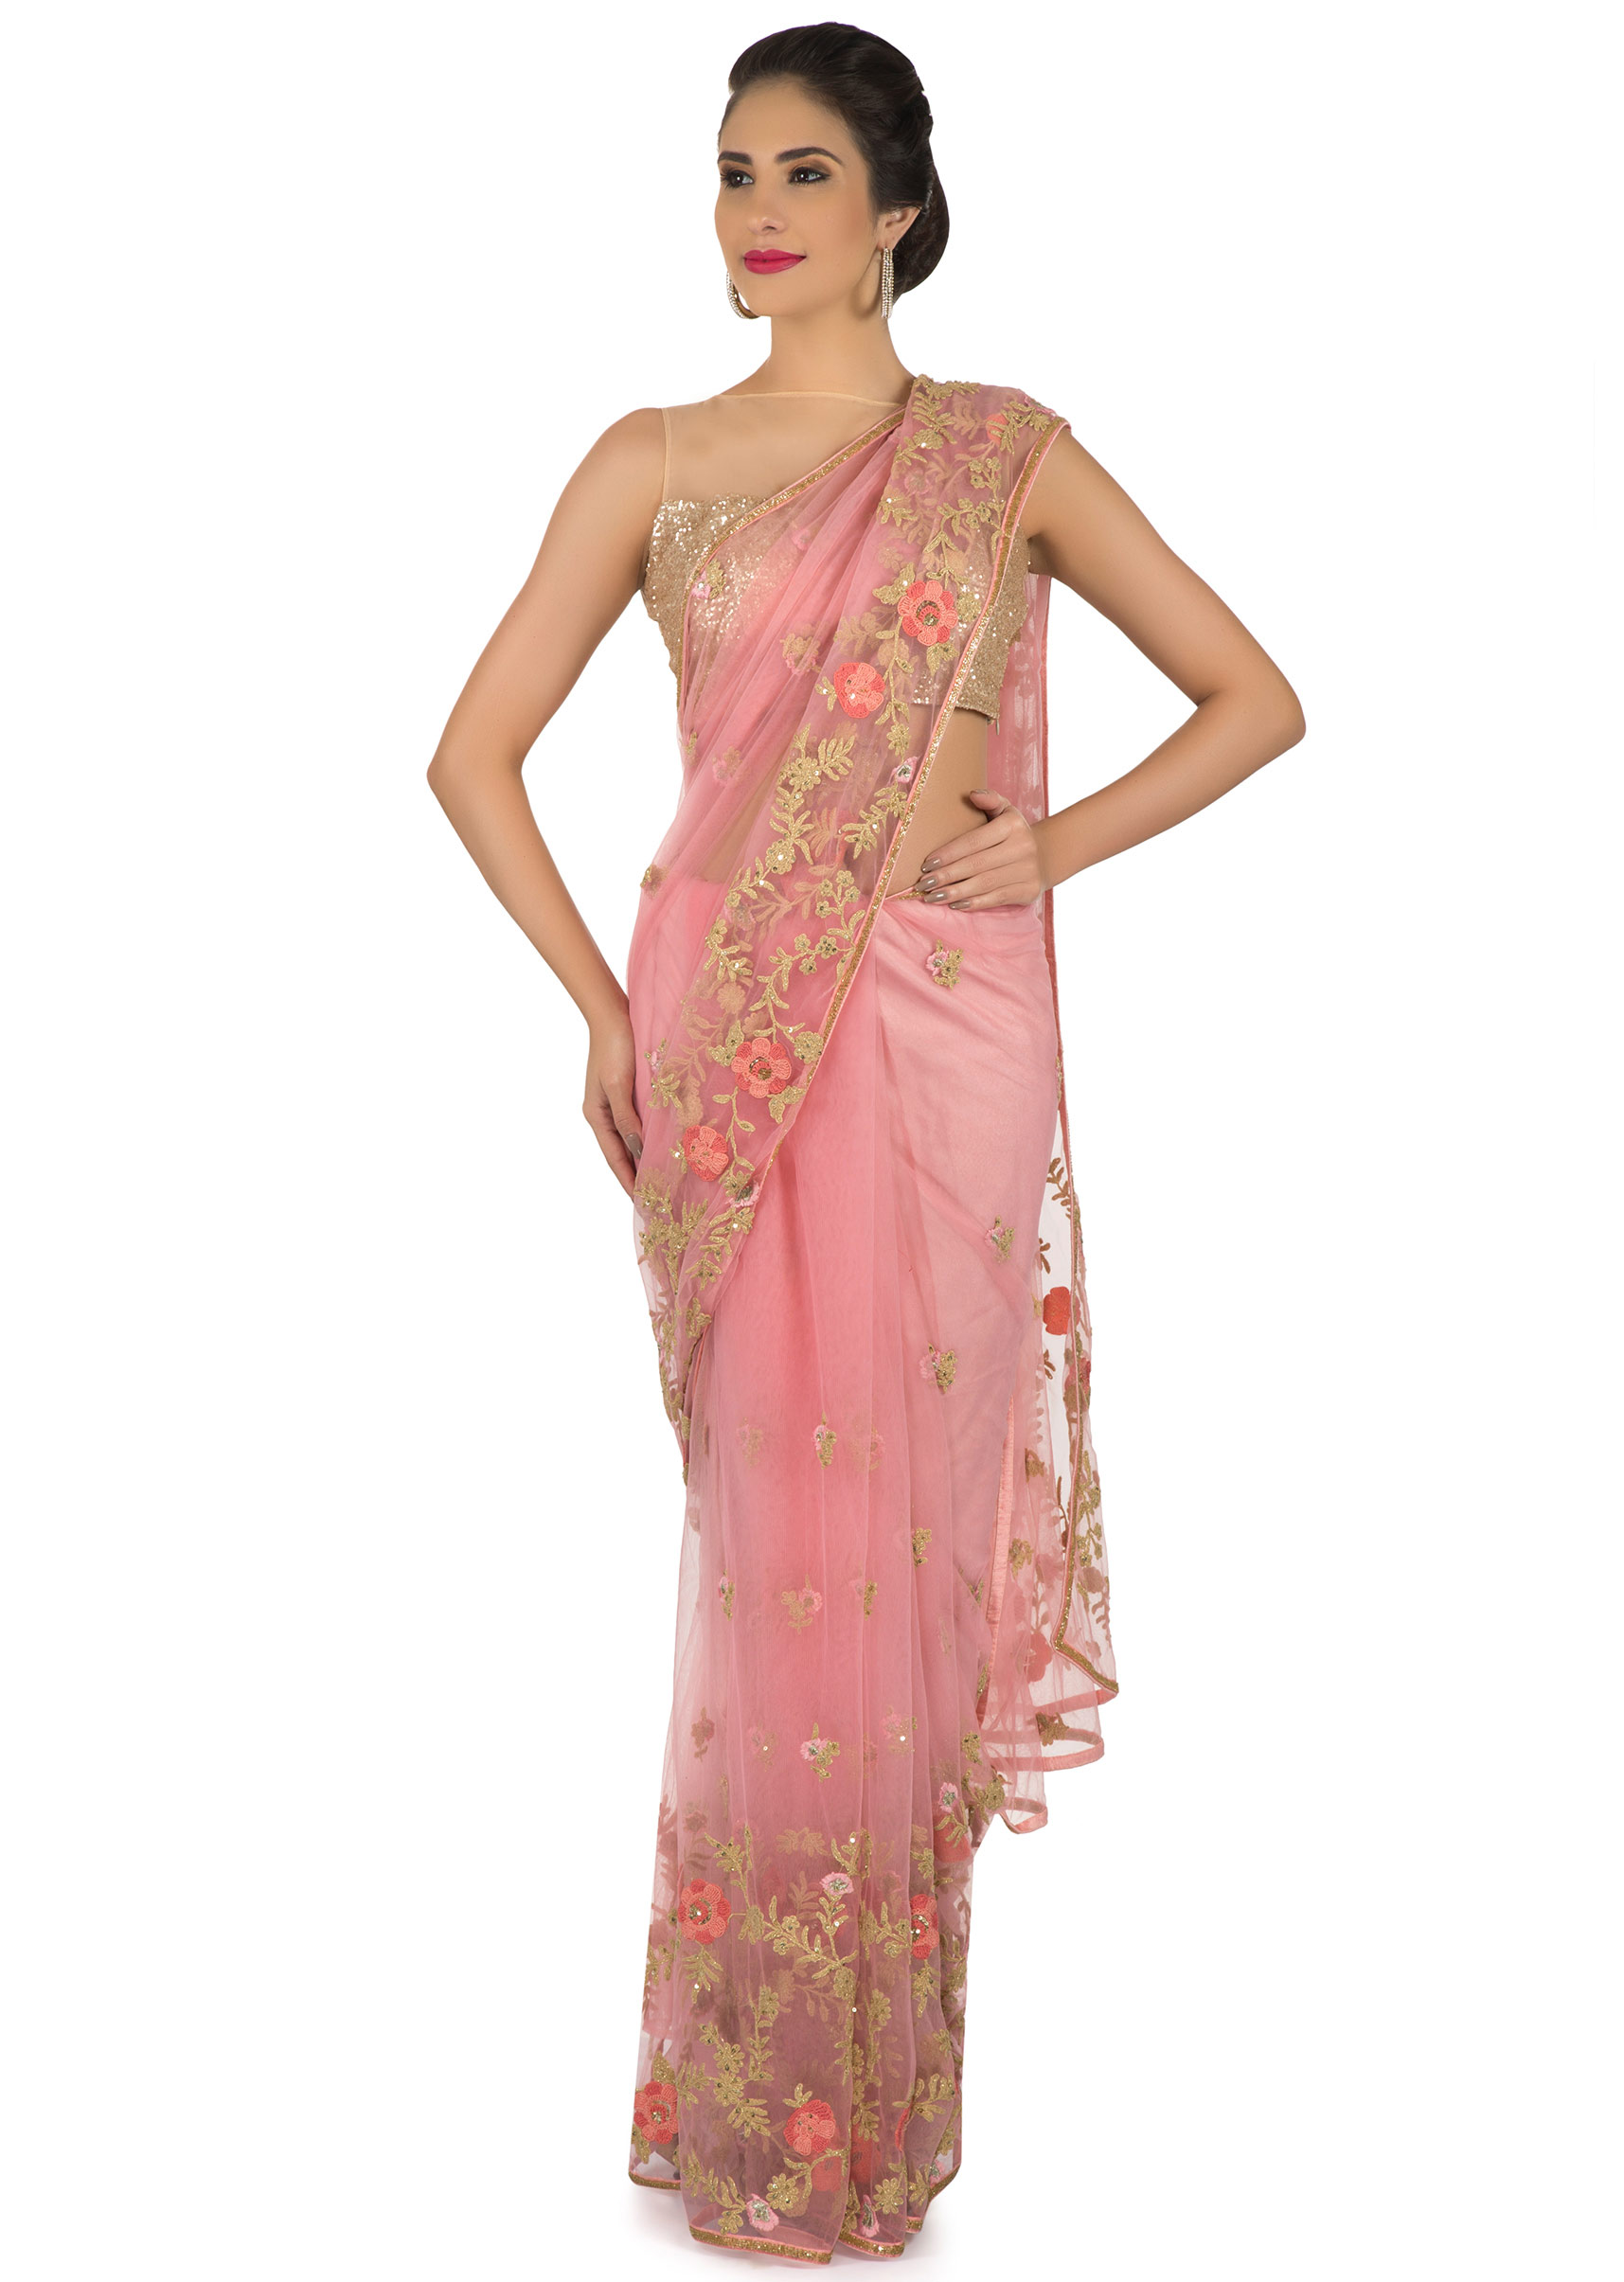 e8e258926391b Candy pink saree in net with resham floral jaal motif only on KalkiMore  Detail